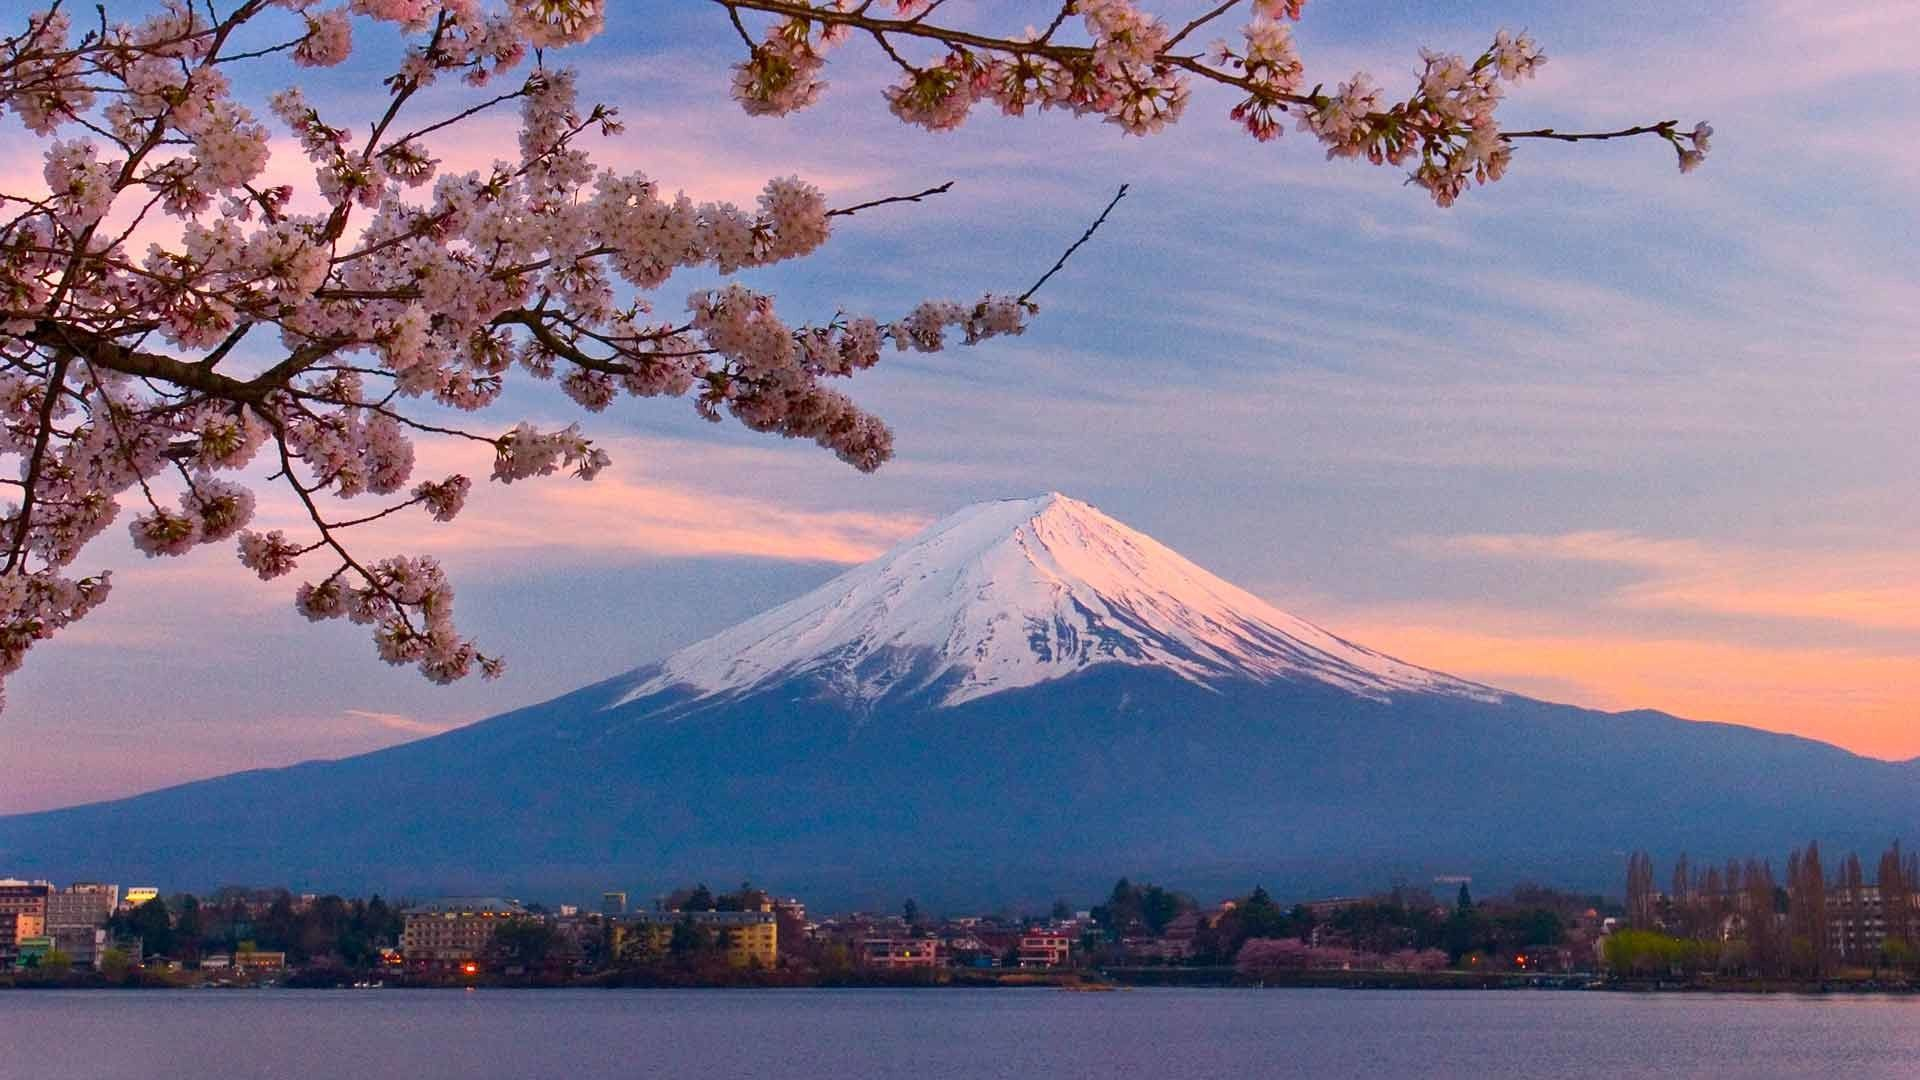 Japanese Desktop Wallpapers Top Free Japanese Desktop Backgrounds Wallpaperaccess